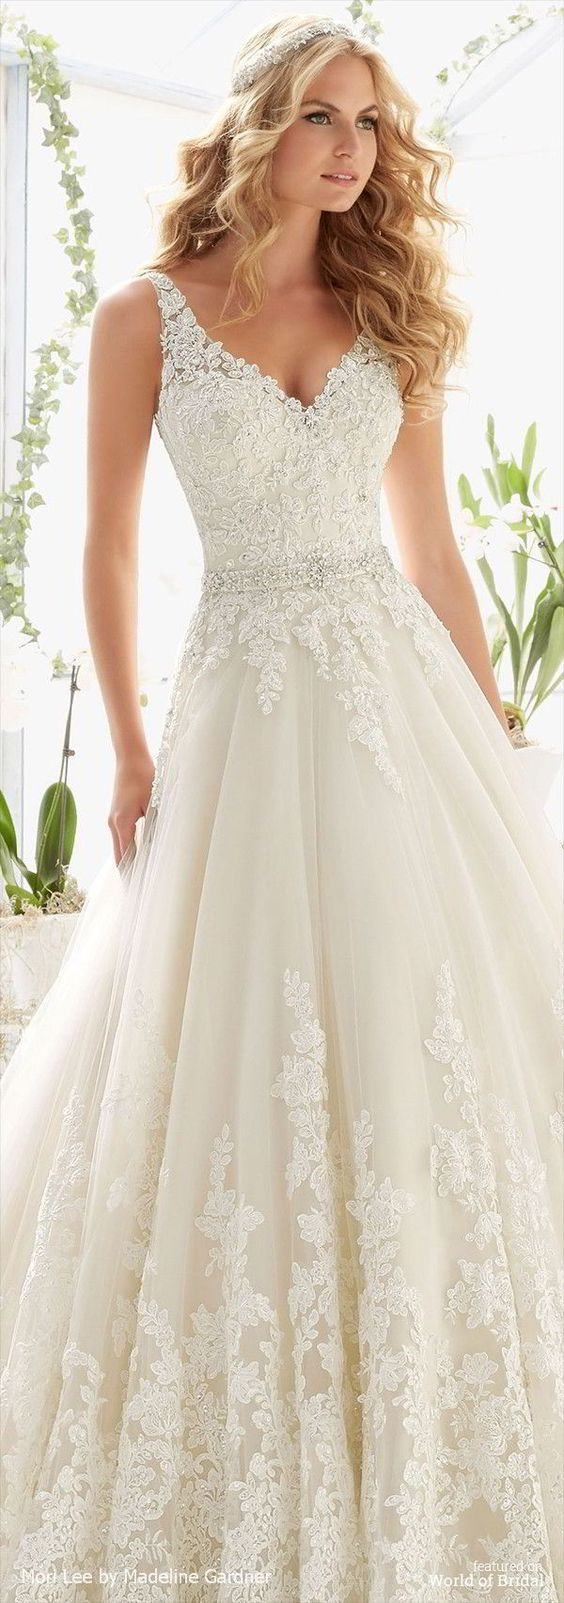 Embroidered Appliques and Scalloped Edging on the Net Gown with Sheer Train and Crystal Moonstone Beading Hey Bellas, If you are looking for… weddingdress http://gelinshop.com/ppost/148829962667119951/